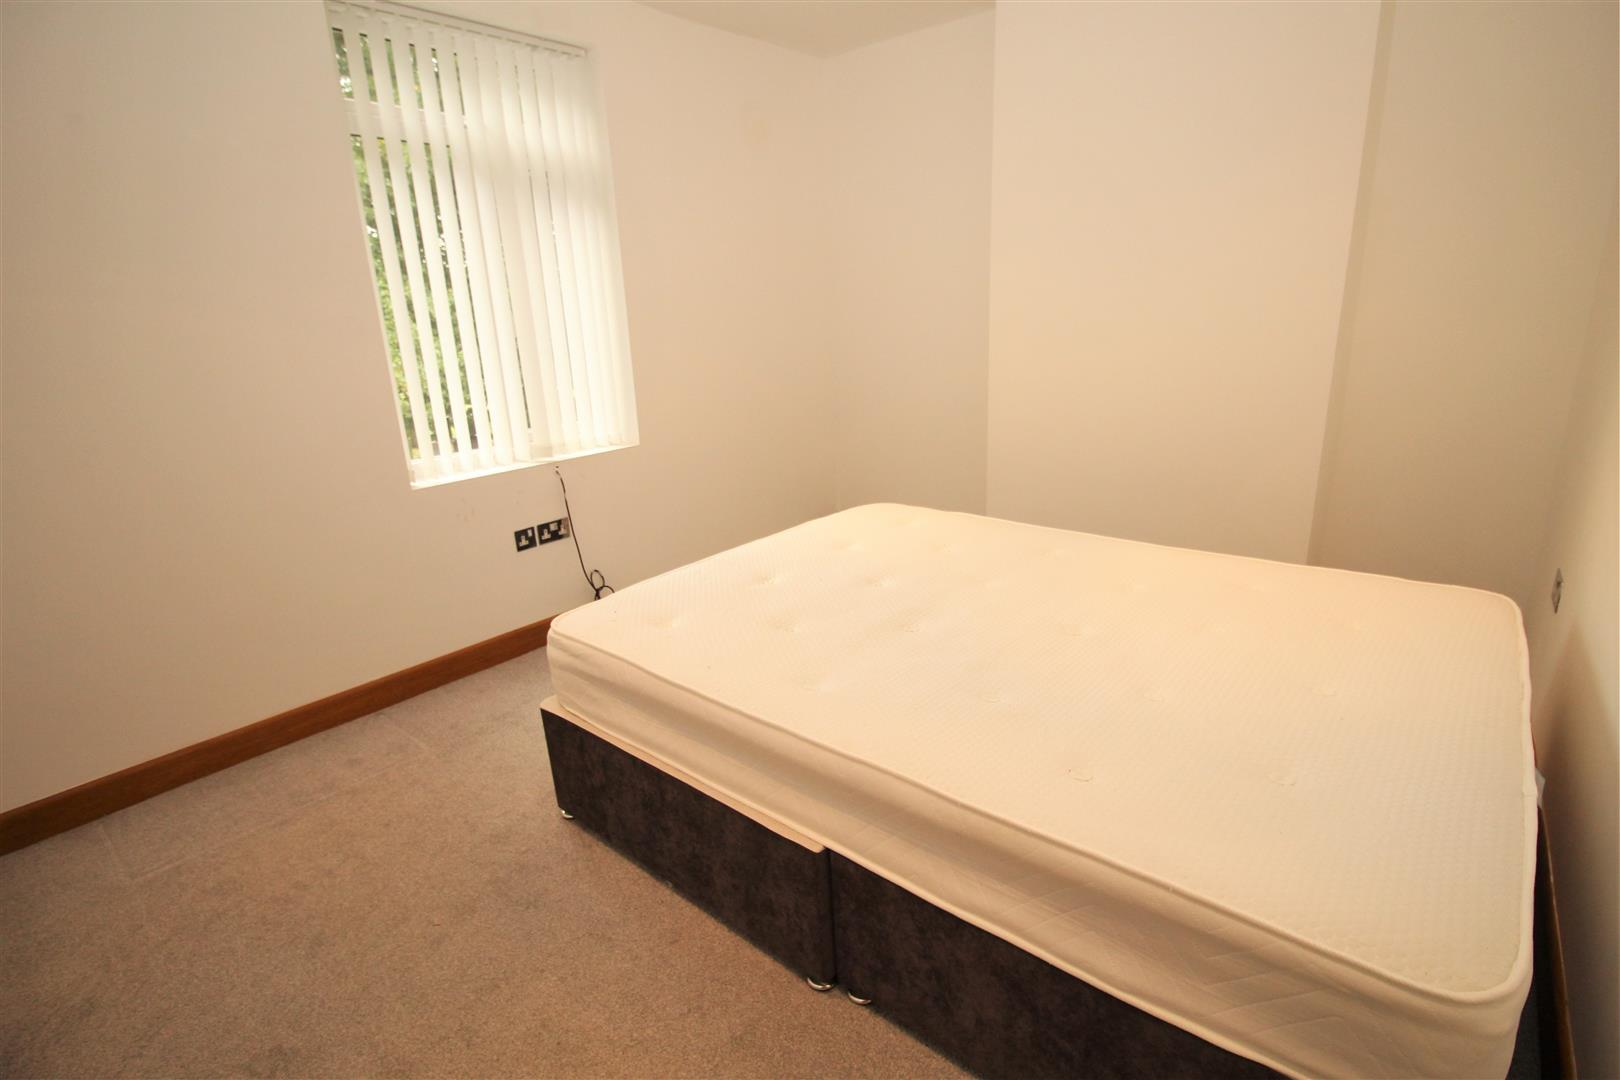 2 Bedrooms, House - Terraced, Greenwich Road, Liverpool